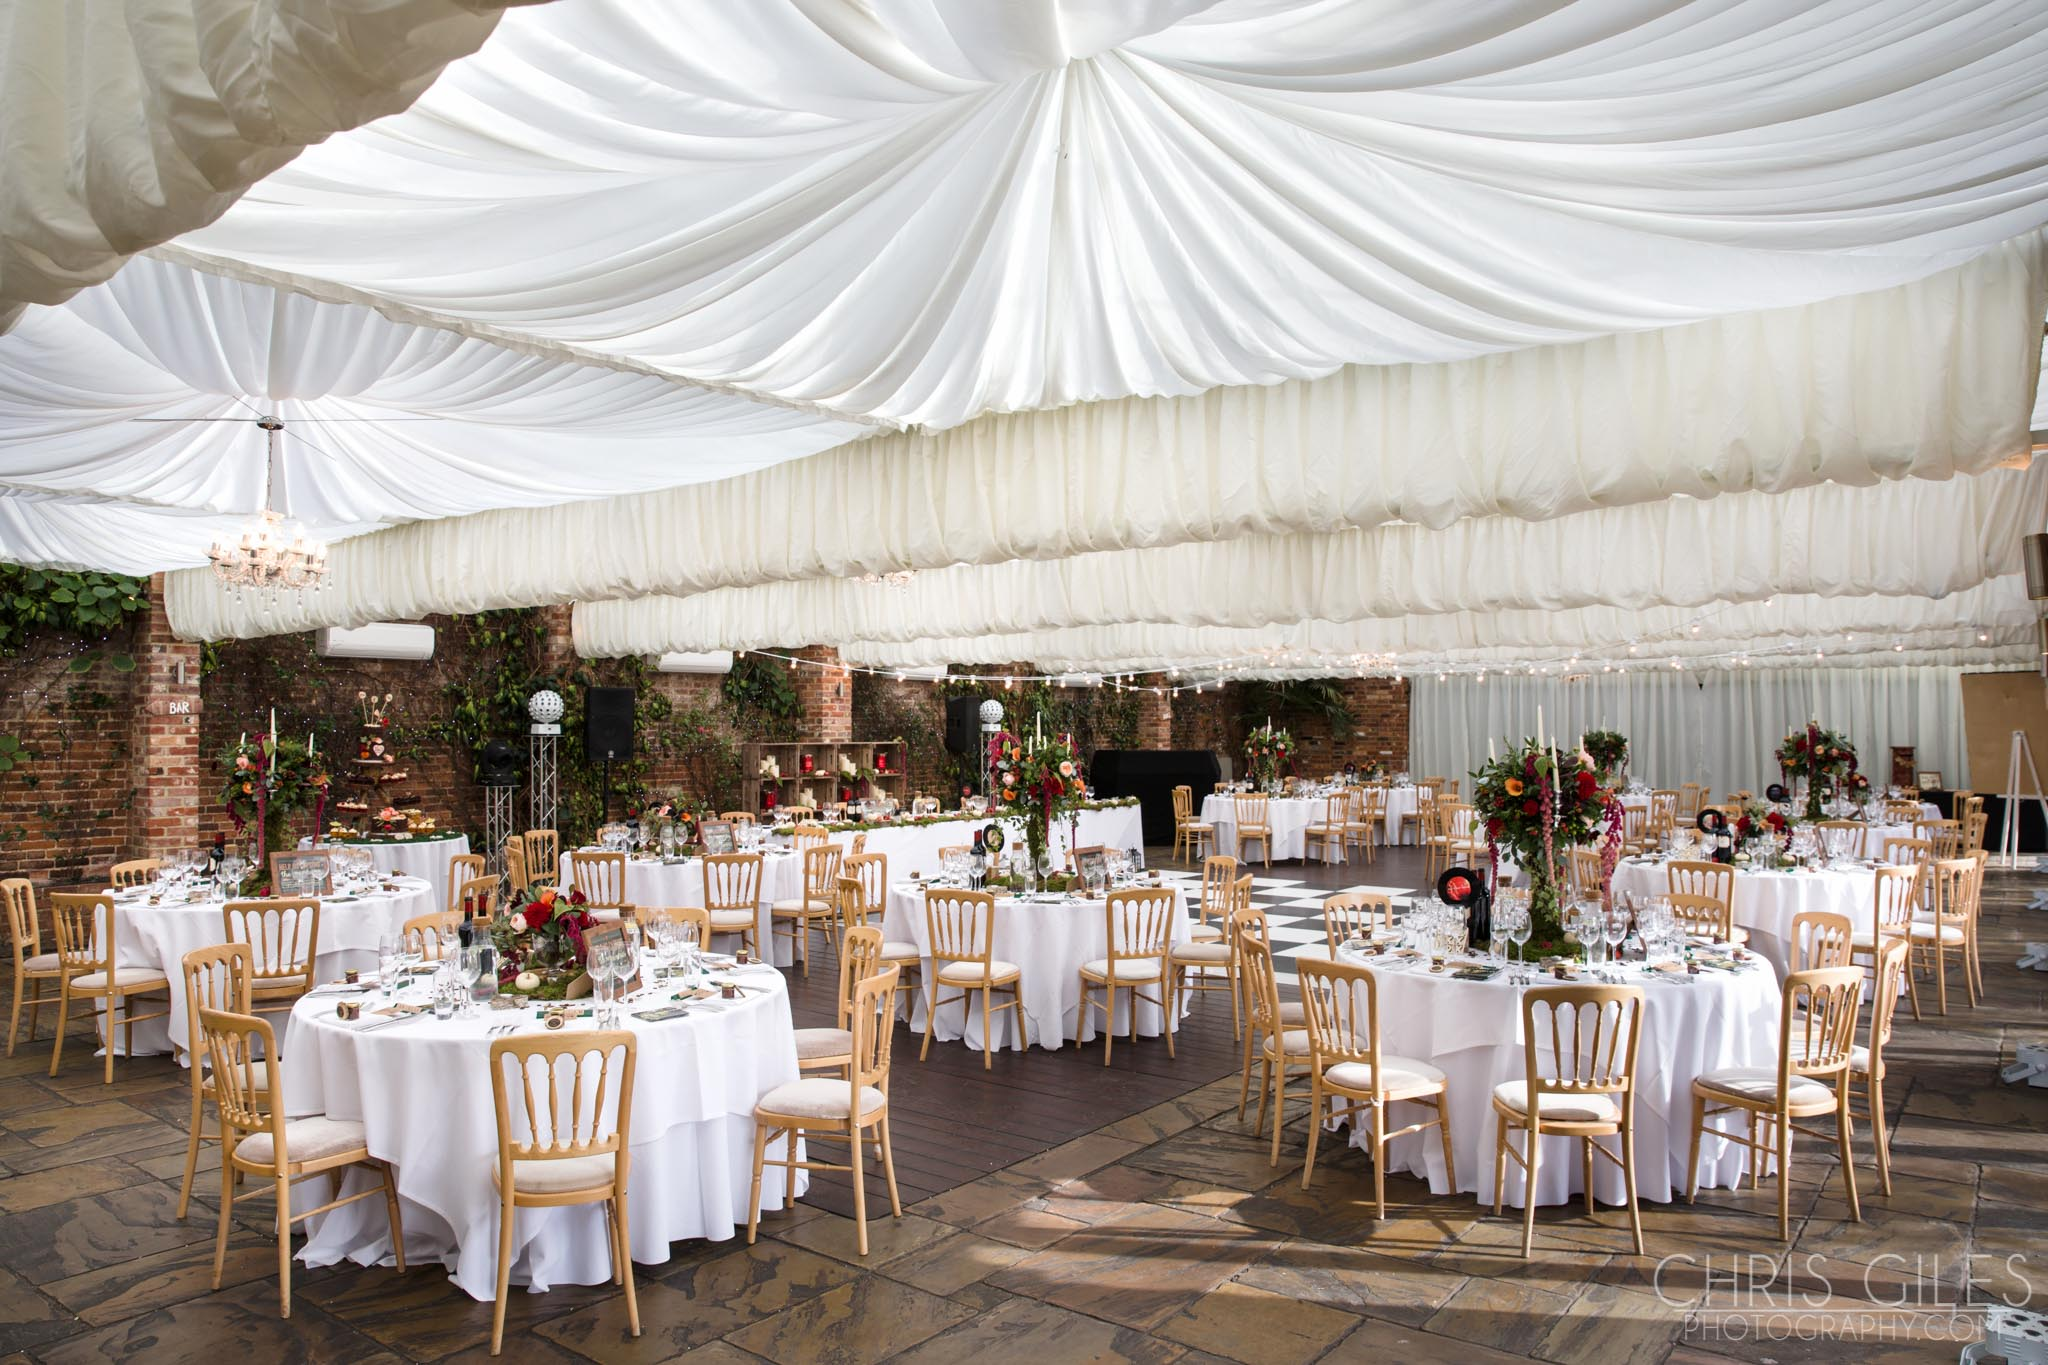 Northbrook Park Orangery set up for a wedding